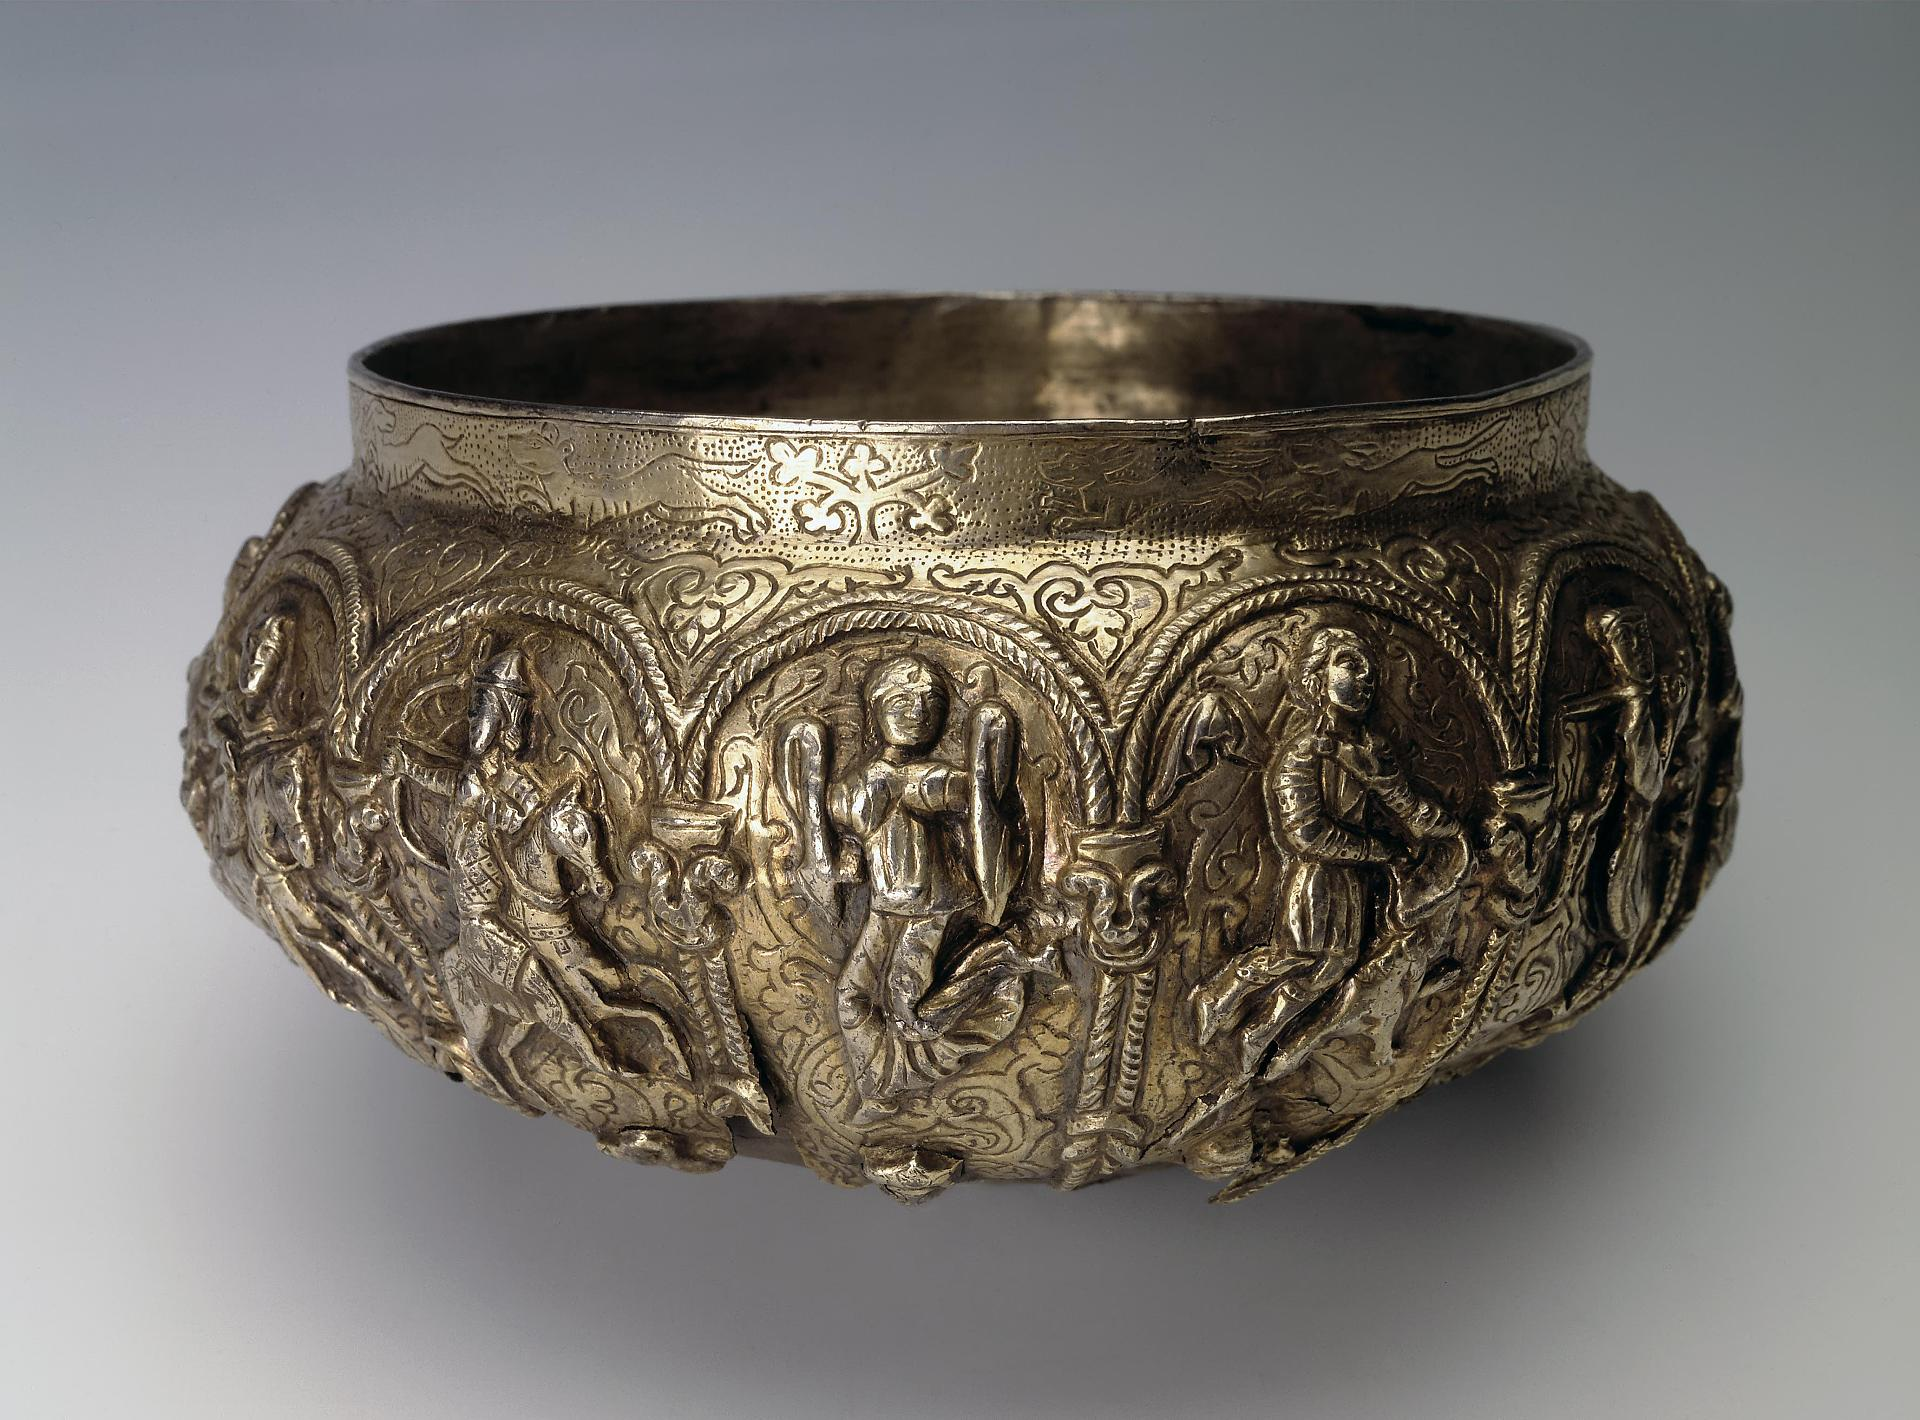 Bowl Showing the Ascension of Alexander the Great,12th century